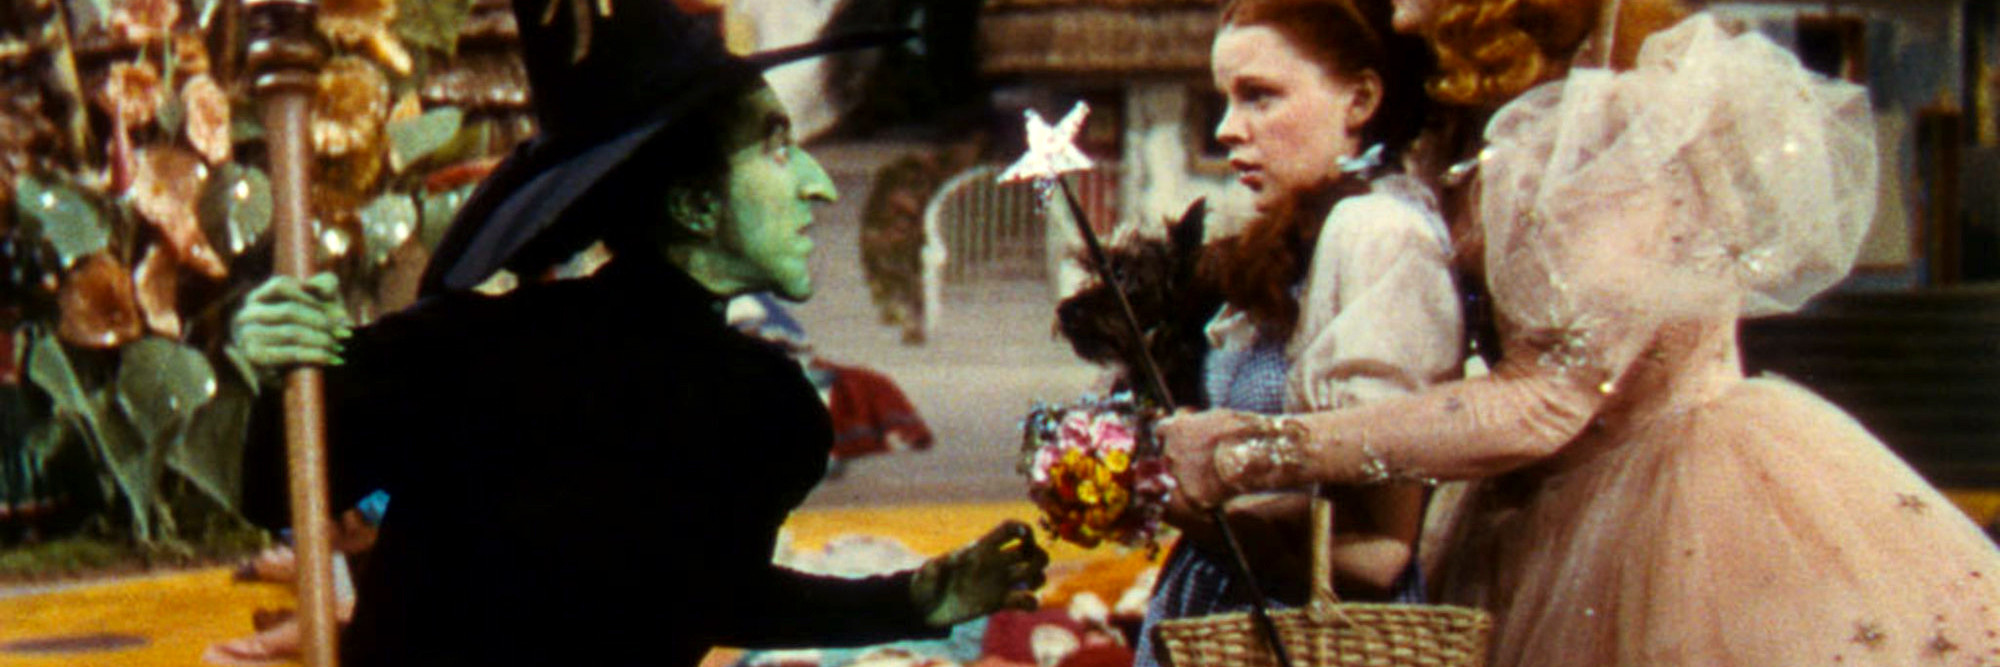 The Wizard of Oz. 1939. USA. Directed by Victor Fleming. Courtesy George Eastman House